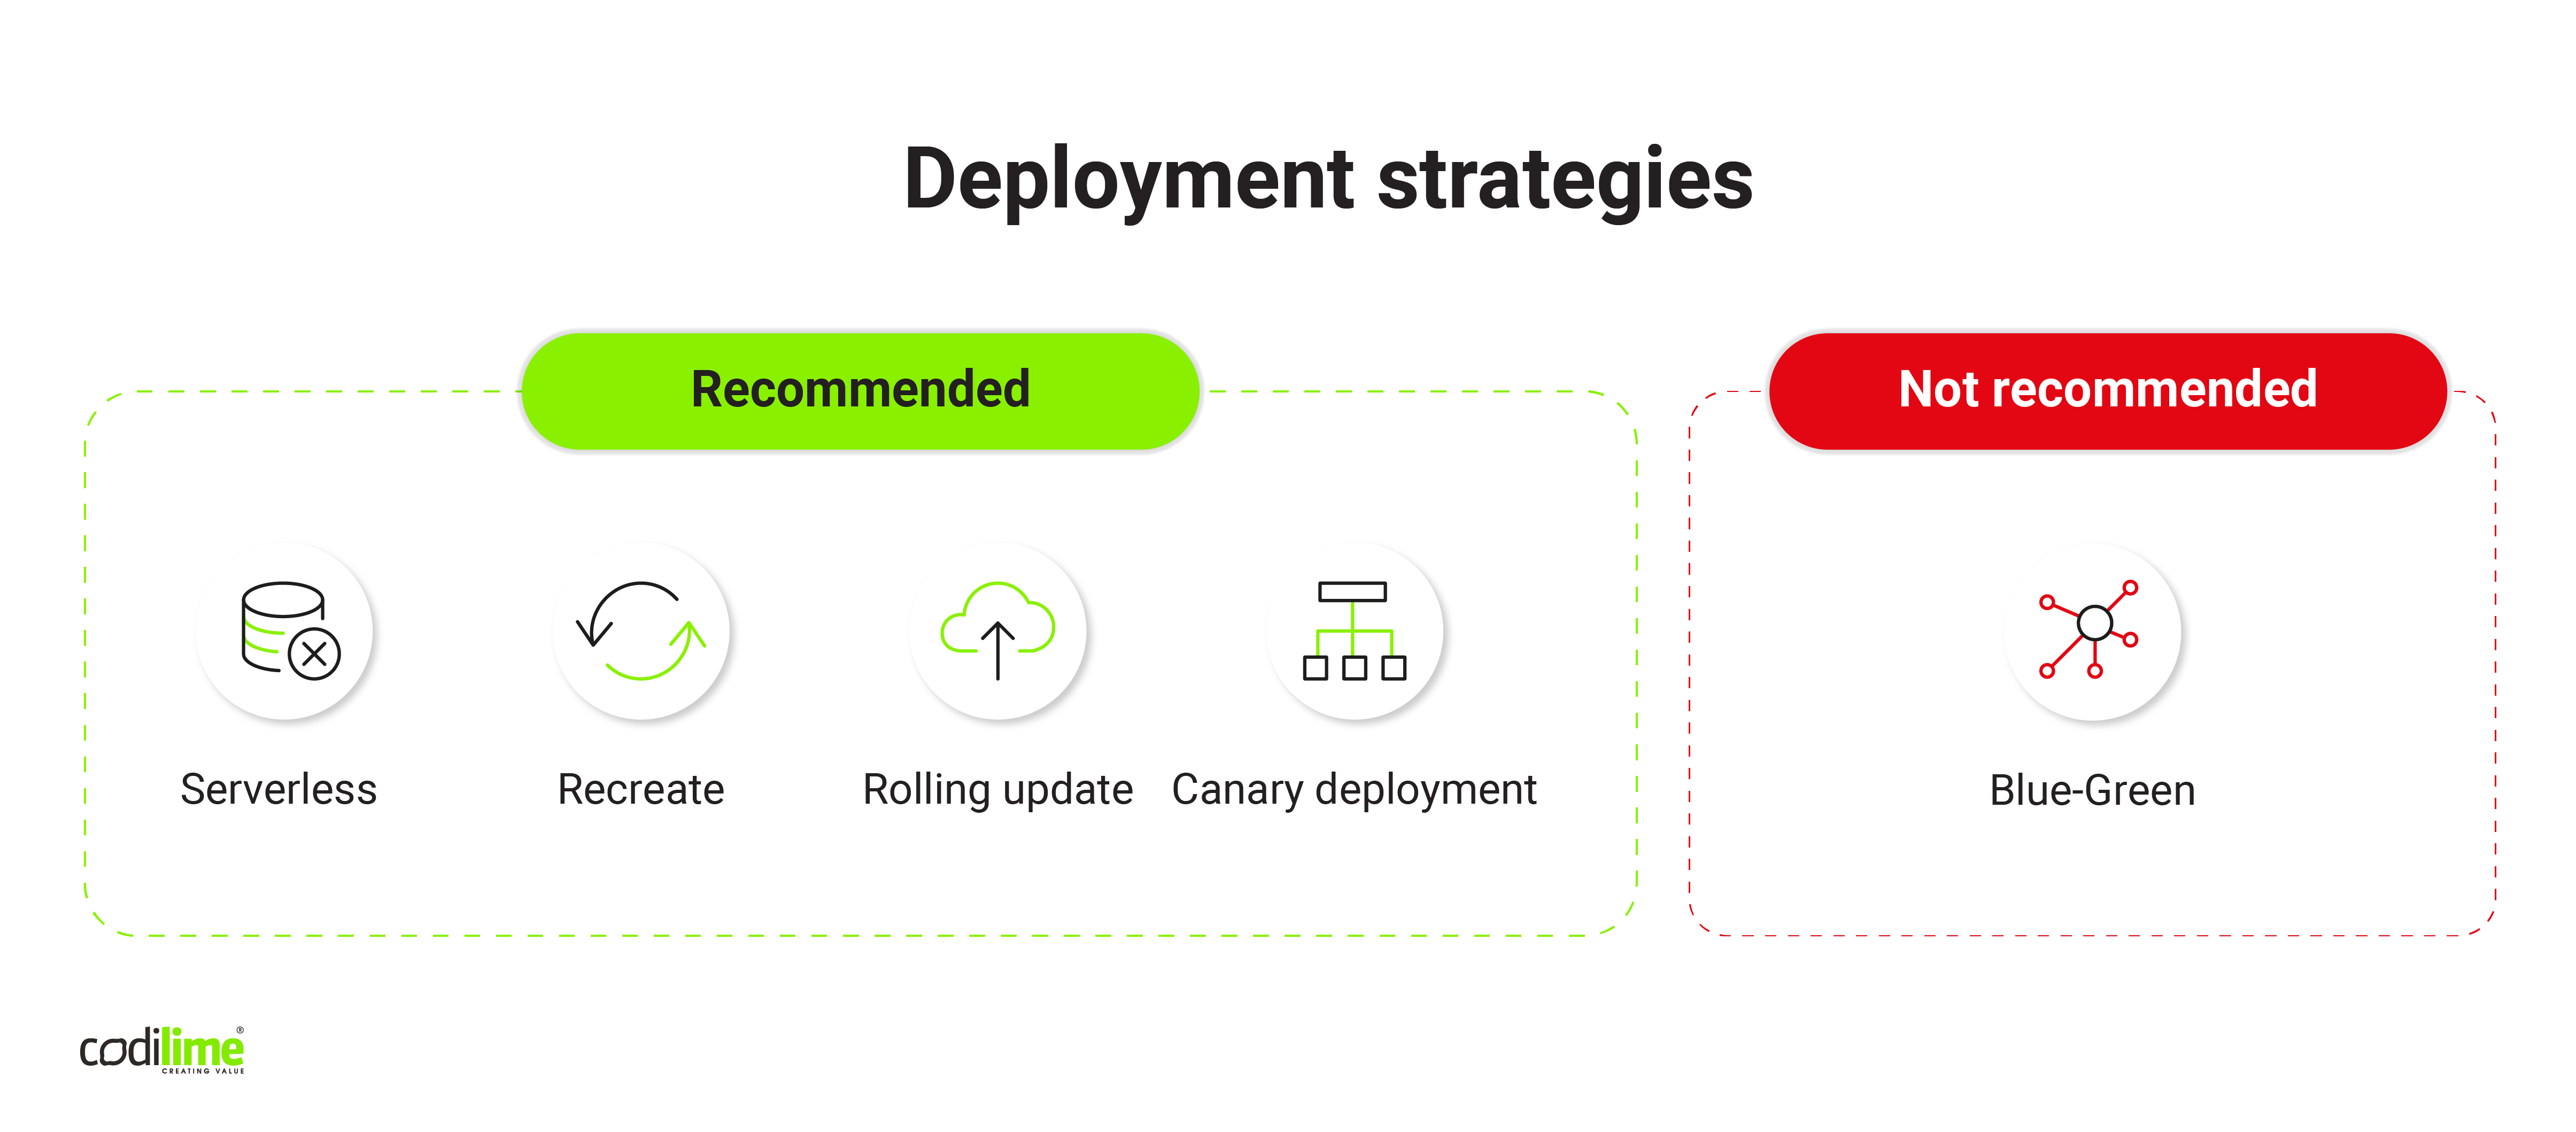 Recommeneded deployment strategies